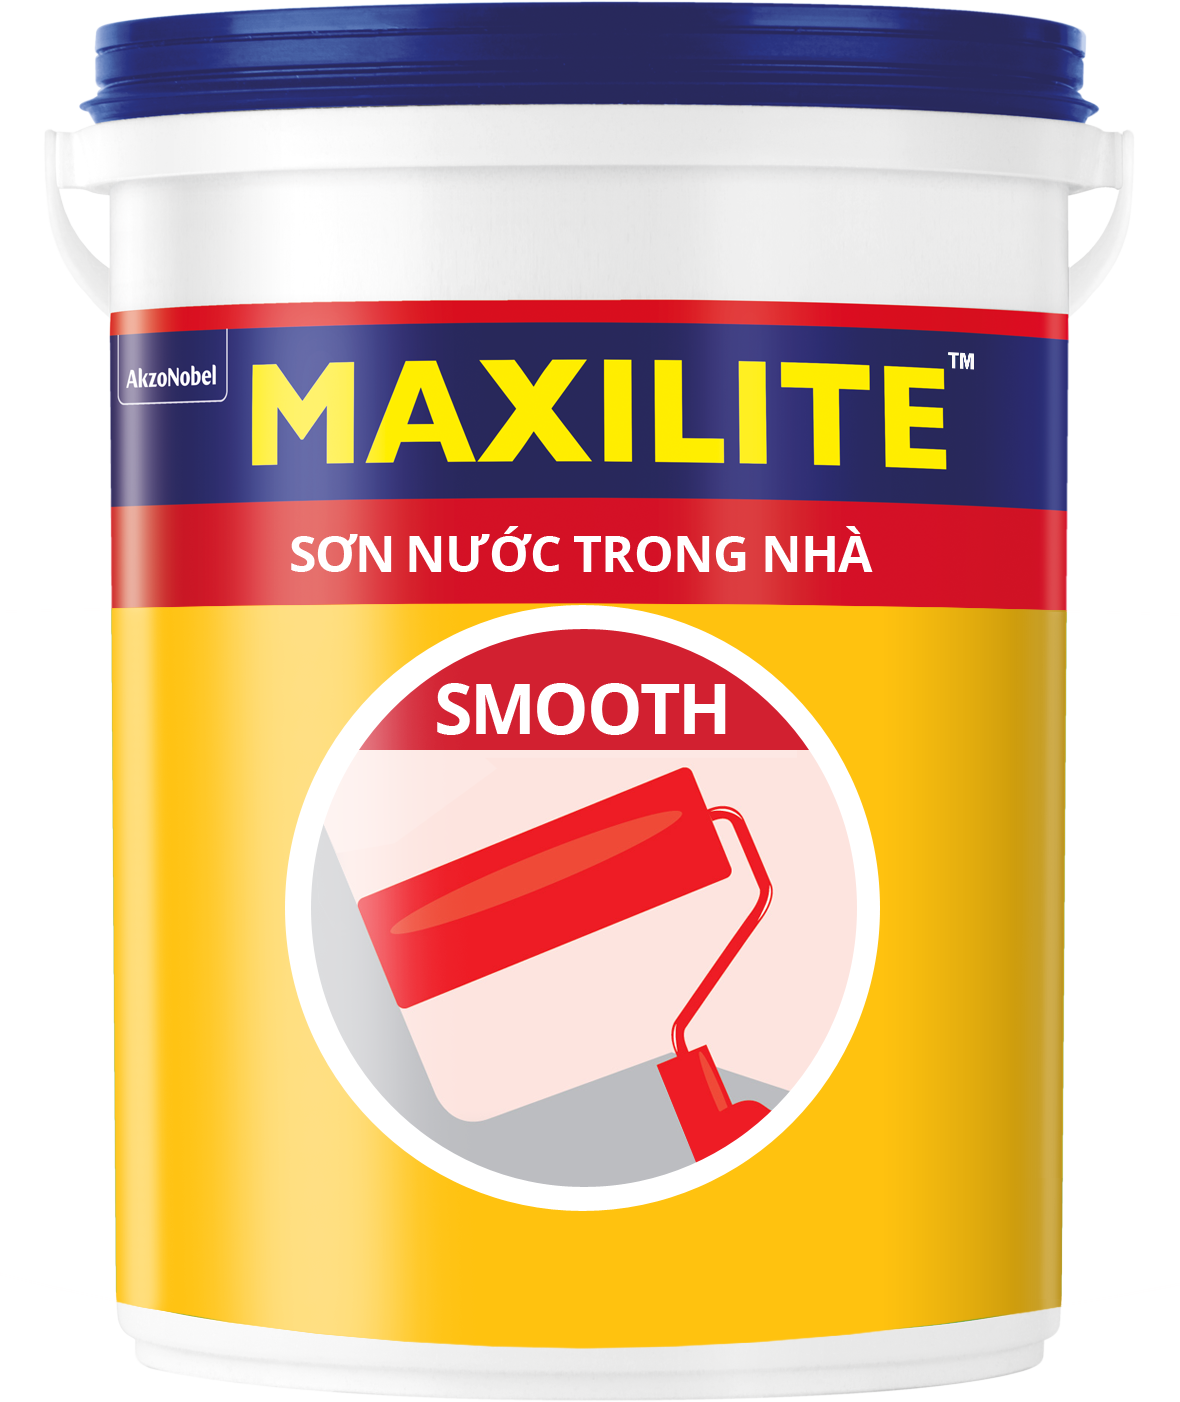 son_nuoc_trong_nha_smooth